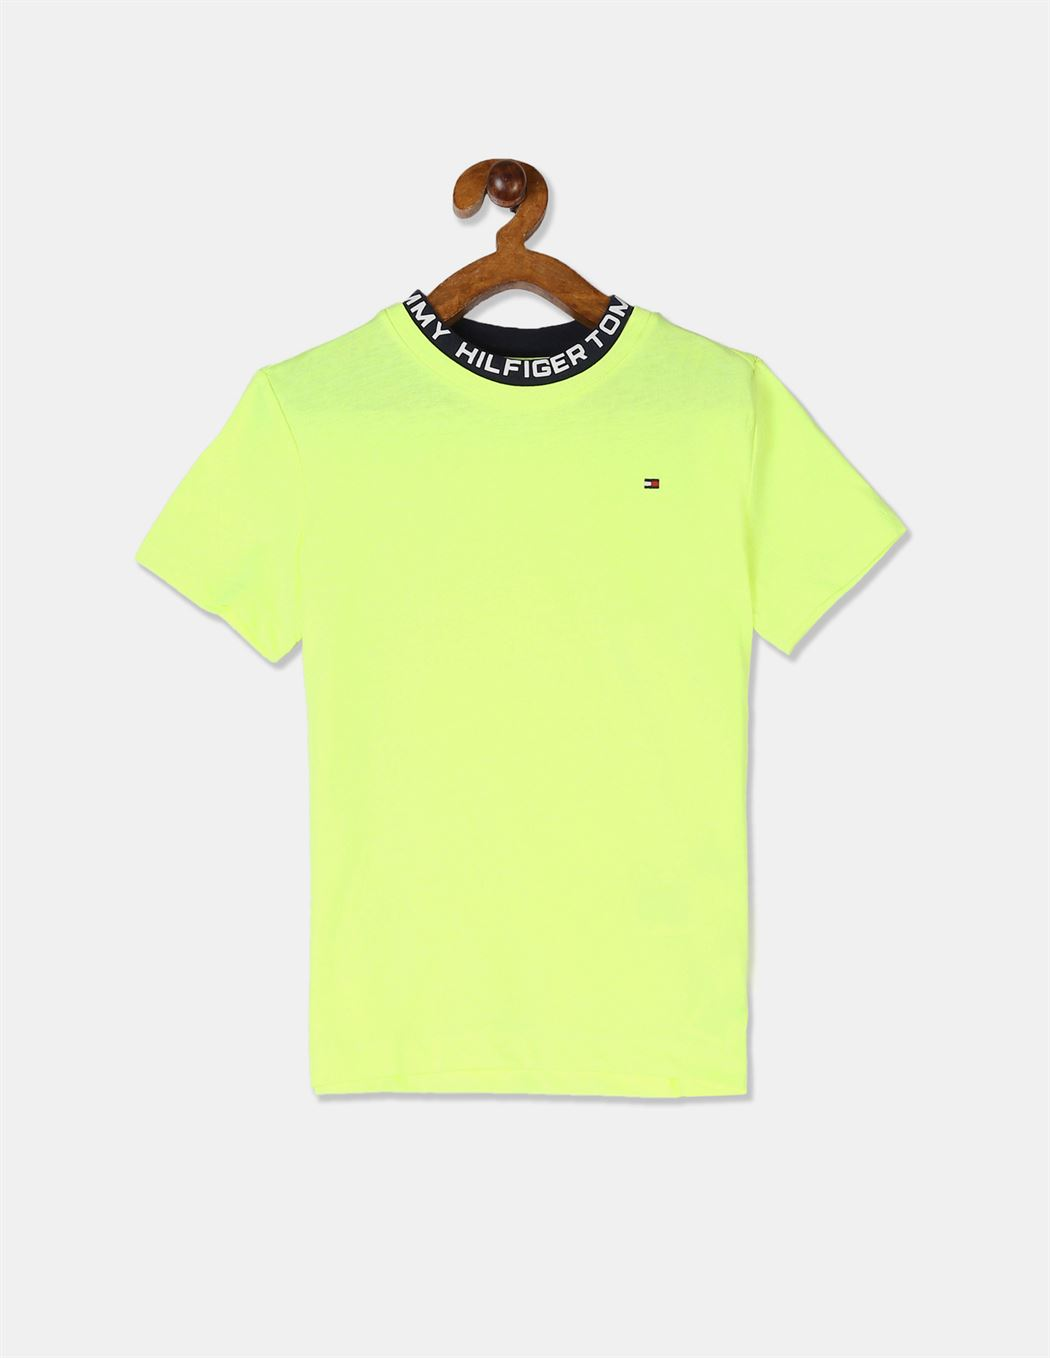 Tommy Hilfiger Boys Yellow Short Sleeve Printed Ribbed Crew Neck T-Shirt